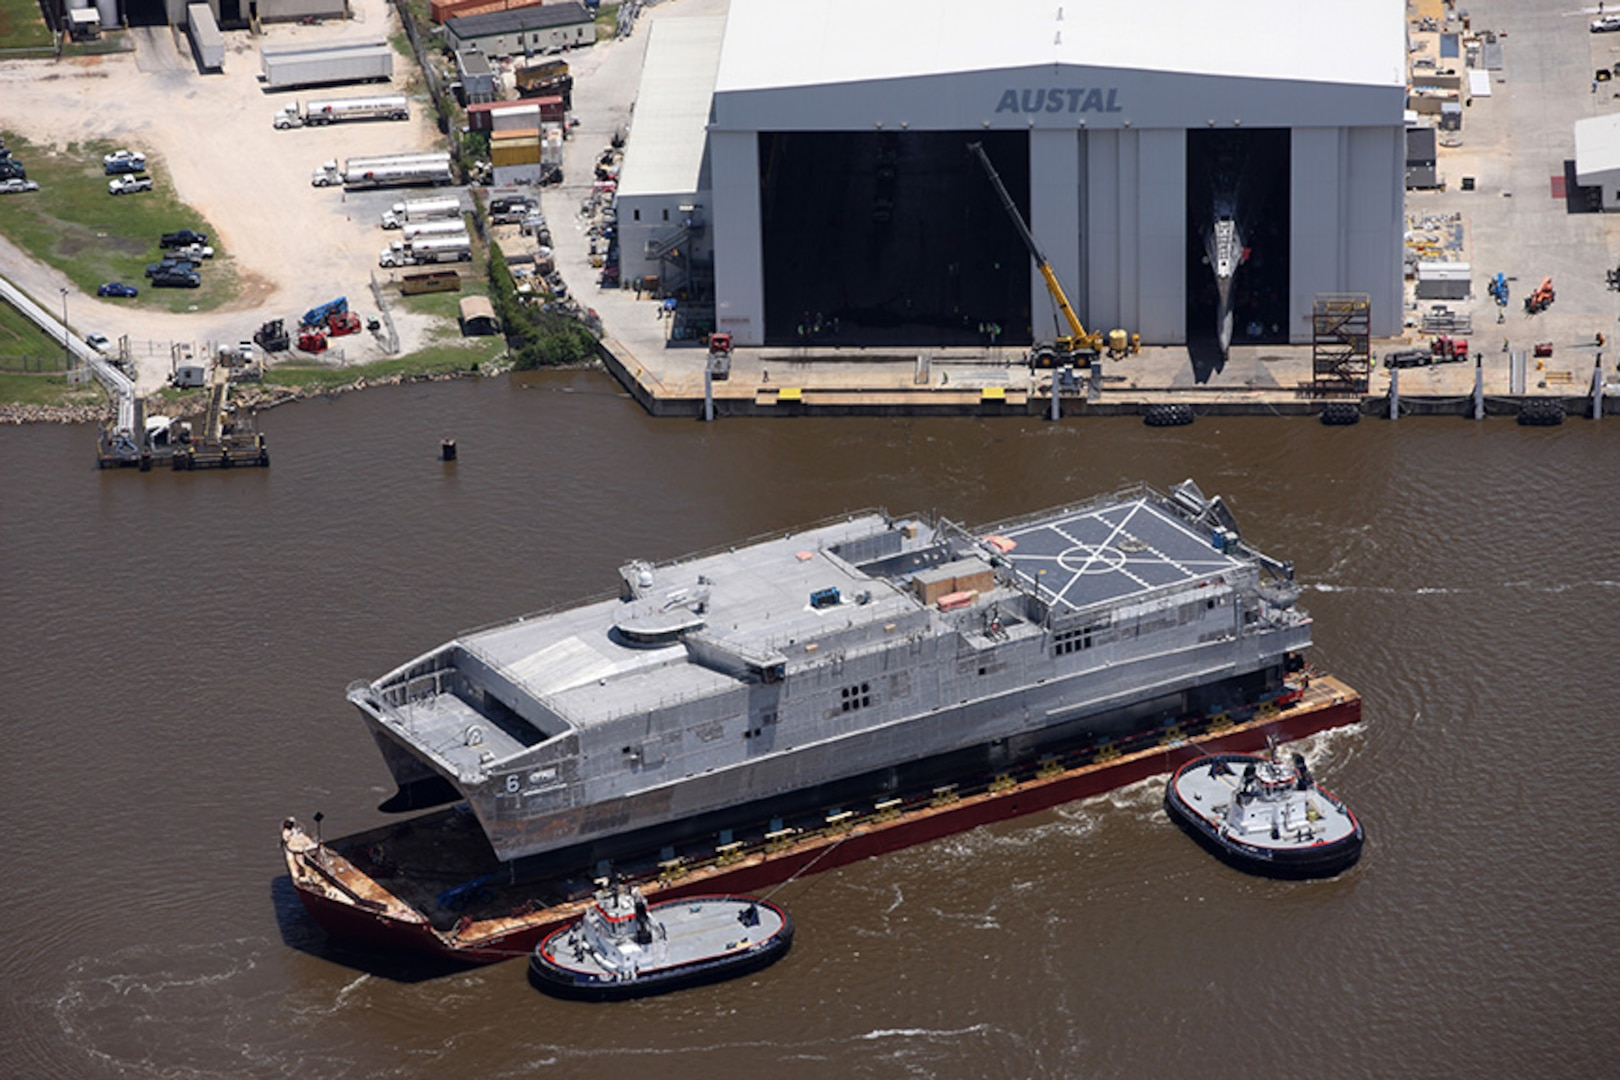 MOBILE, Alabama - (May 19, 2015) - The Navy's newest Joint High Speed Vessel (JHSV 6), the future USNS Brunswick, was launched from the Austal USA shipyard.